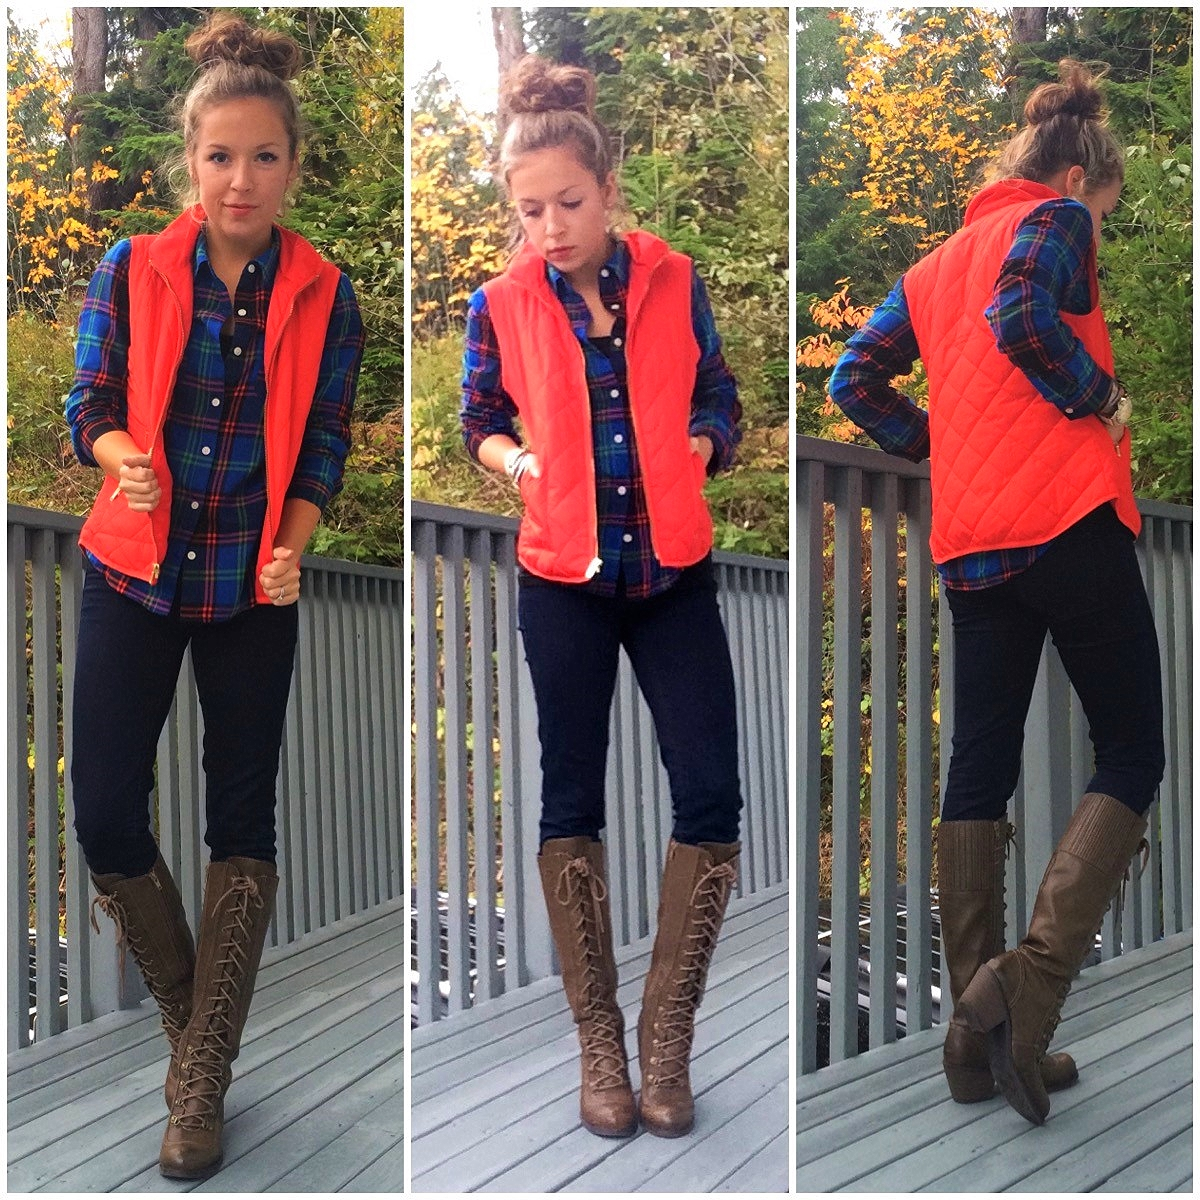 Cold weather bright flannel, vest and boots : Outfit inspiration